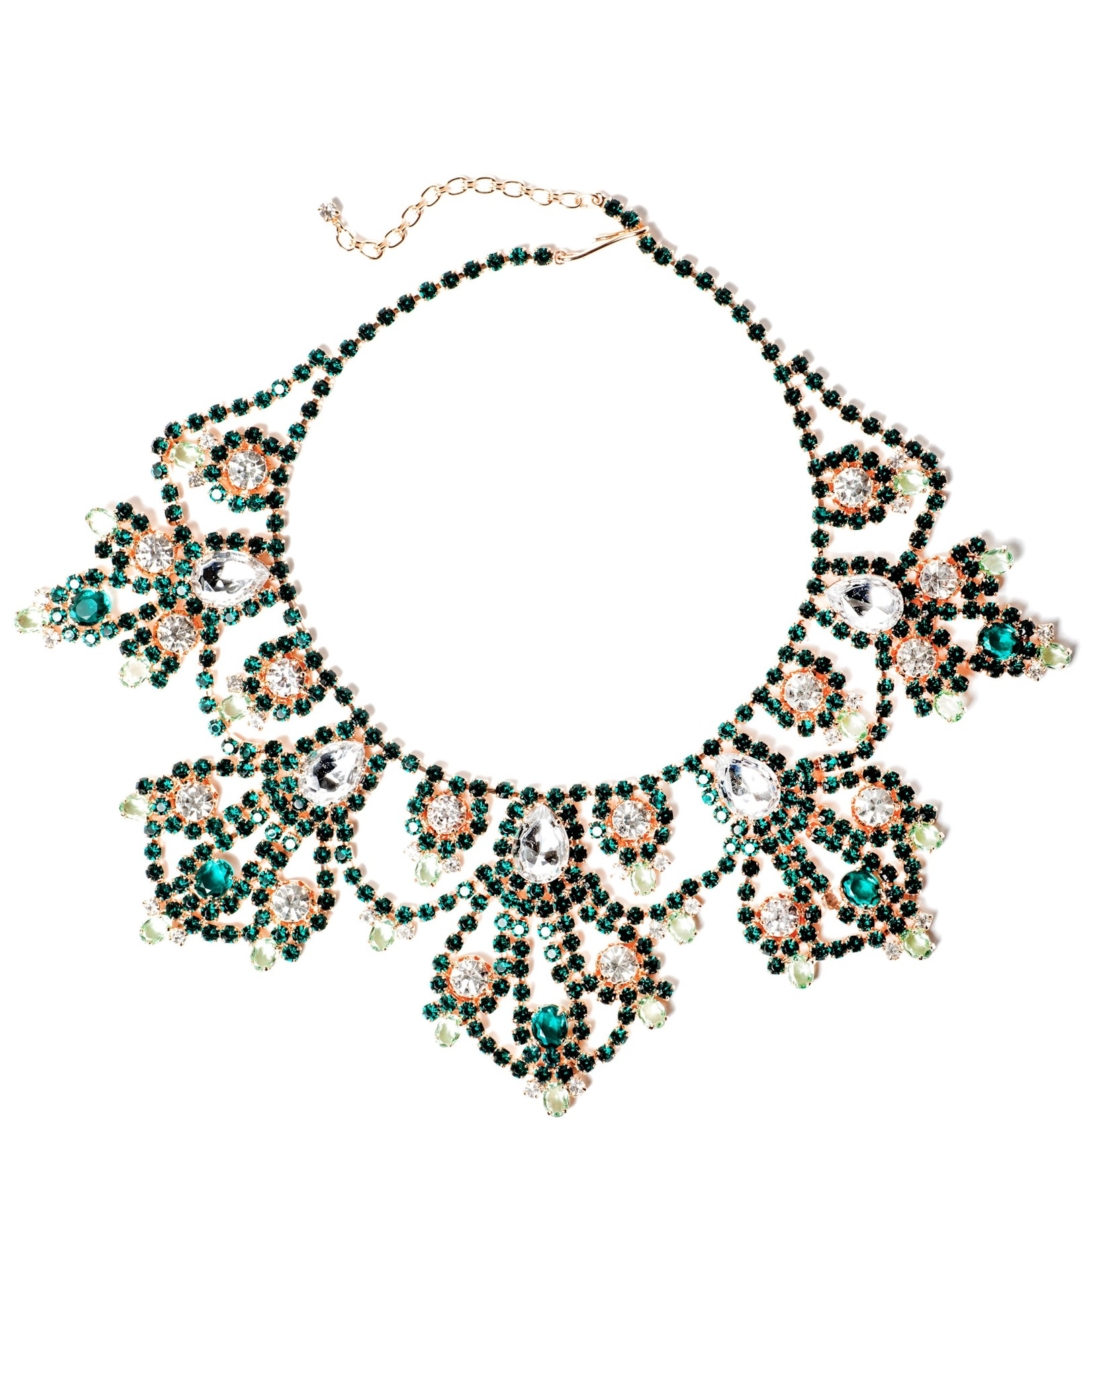 Emerald Green and Rhinestone Rose Gold Statement Necklace